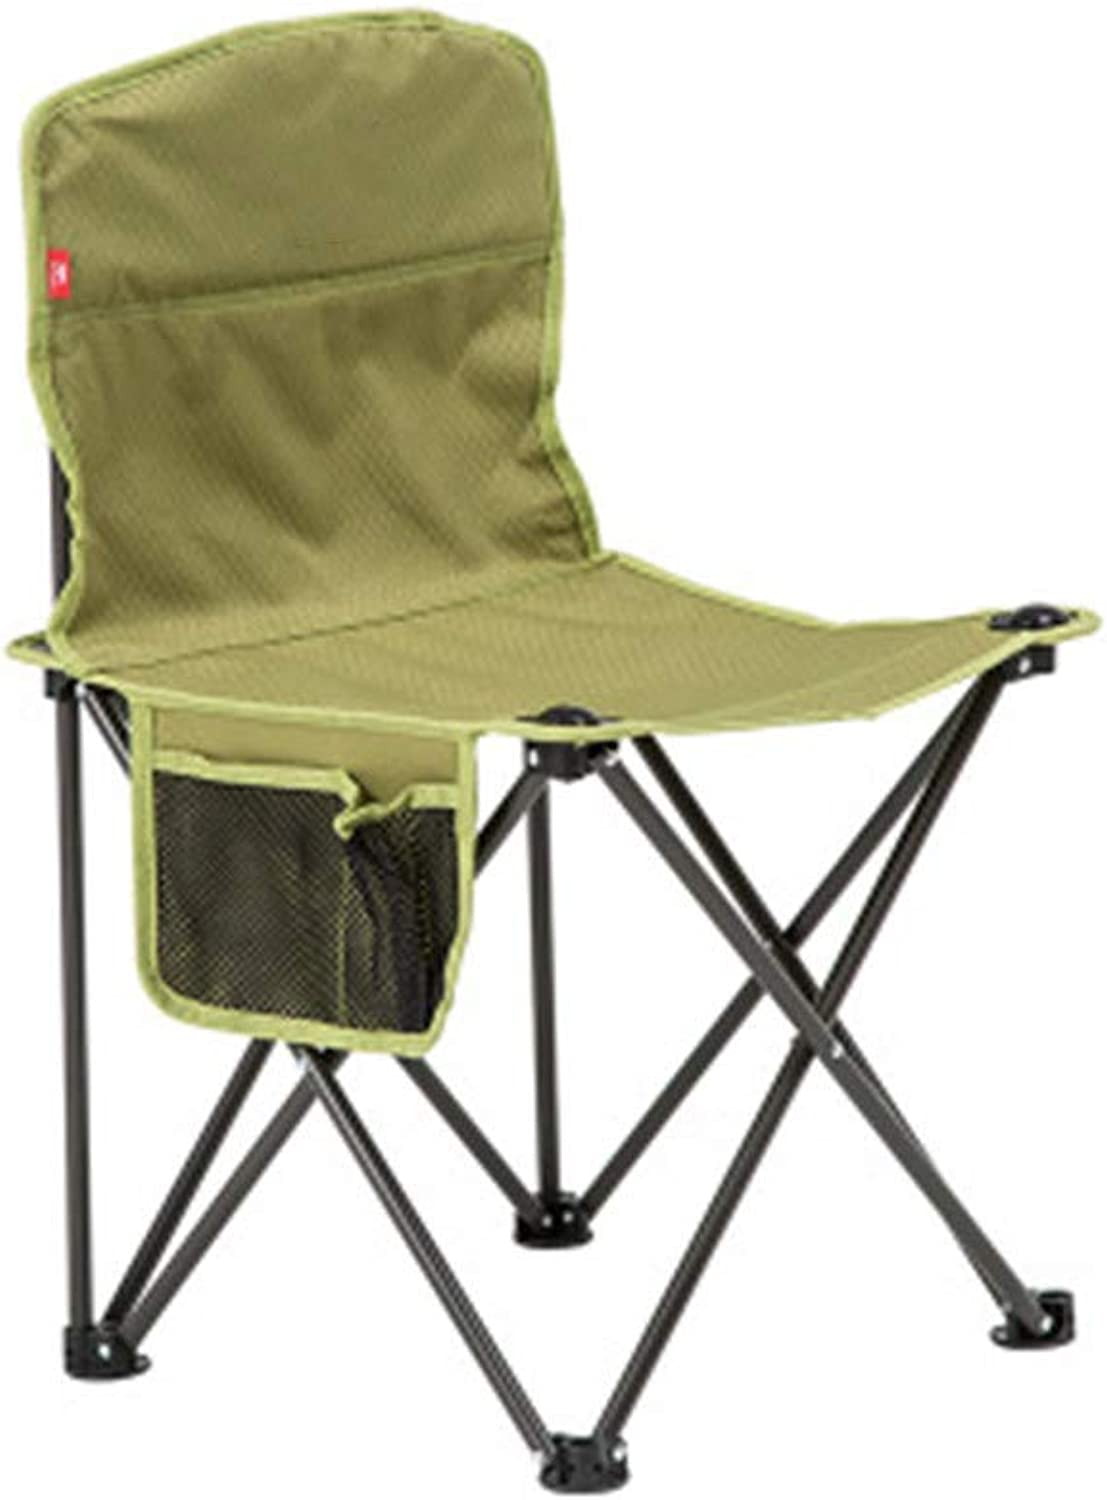 Folding Camp Chair Camping Lightweight Perfect Portable Outdoor for Fishing Garden Hiking Backpacking Travel Outside Seat Lumbar Back Support Light Weight,Green